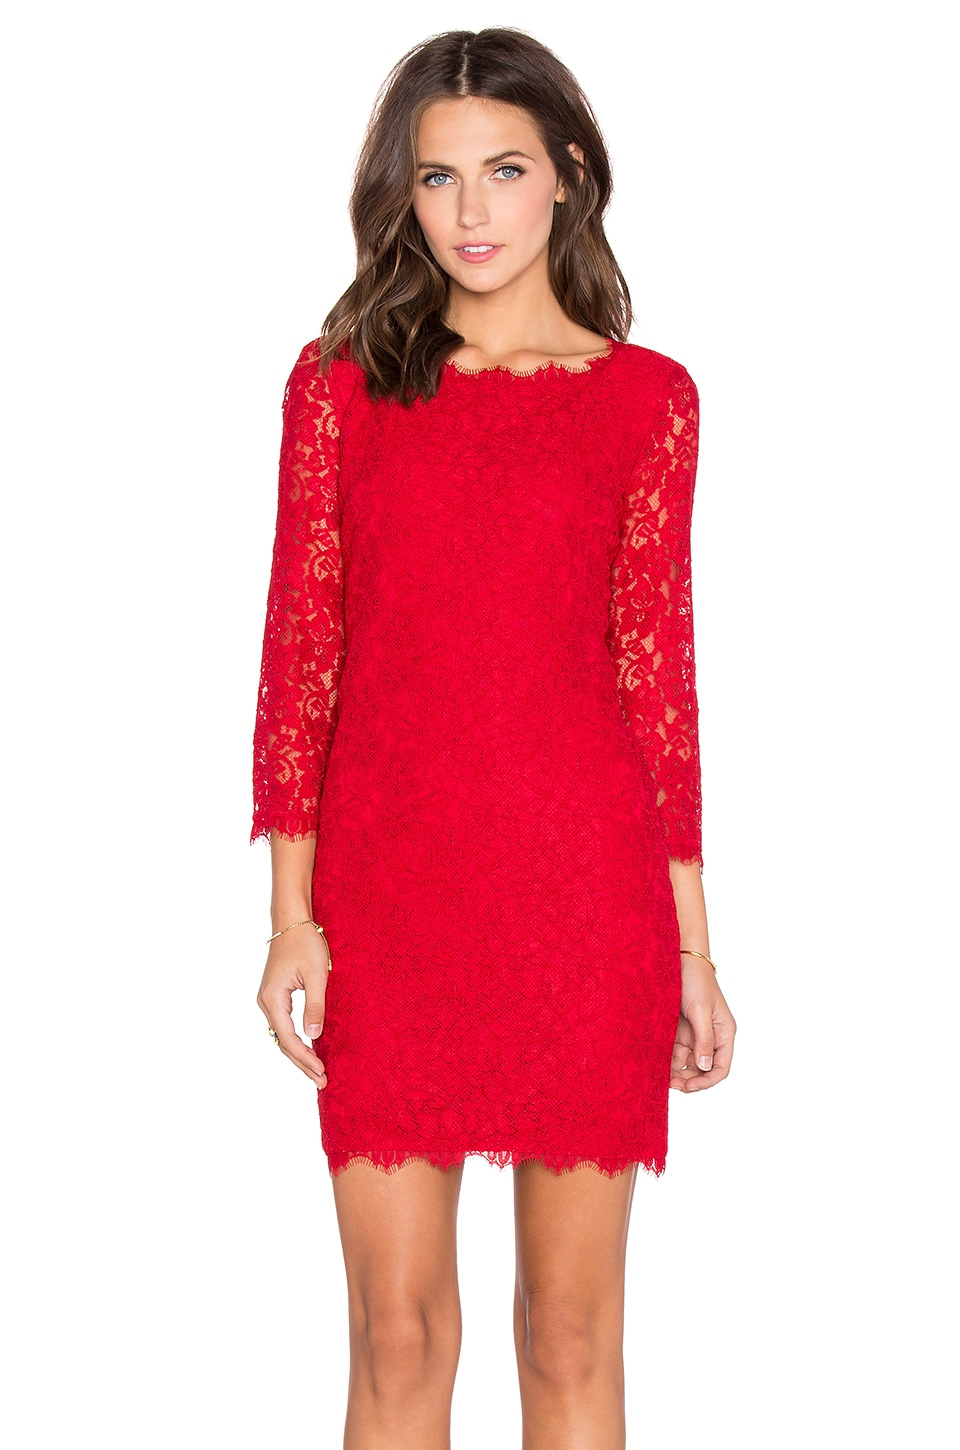 Diane von Furstenberg Zarita Lace Mini Dress in Lacquer Red